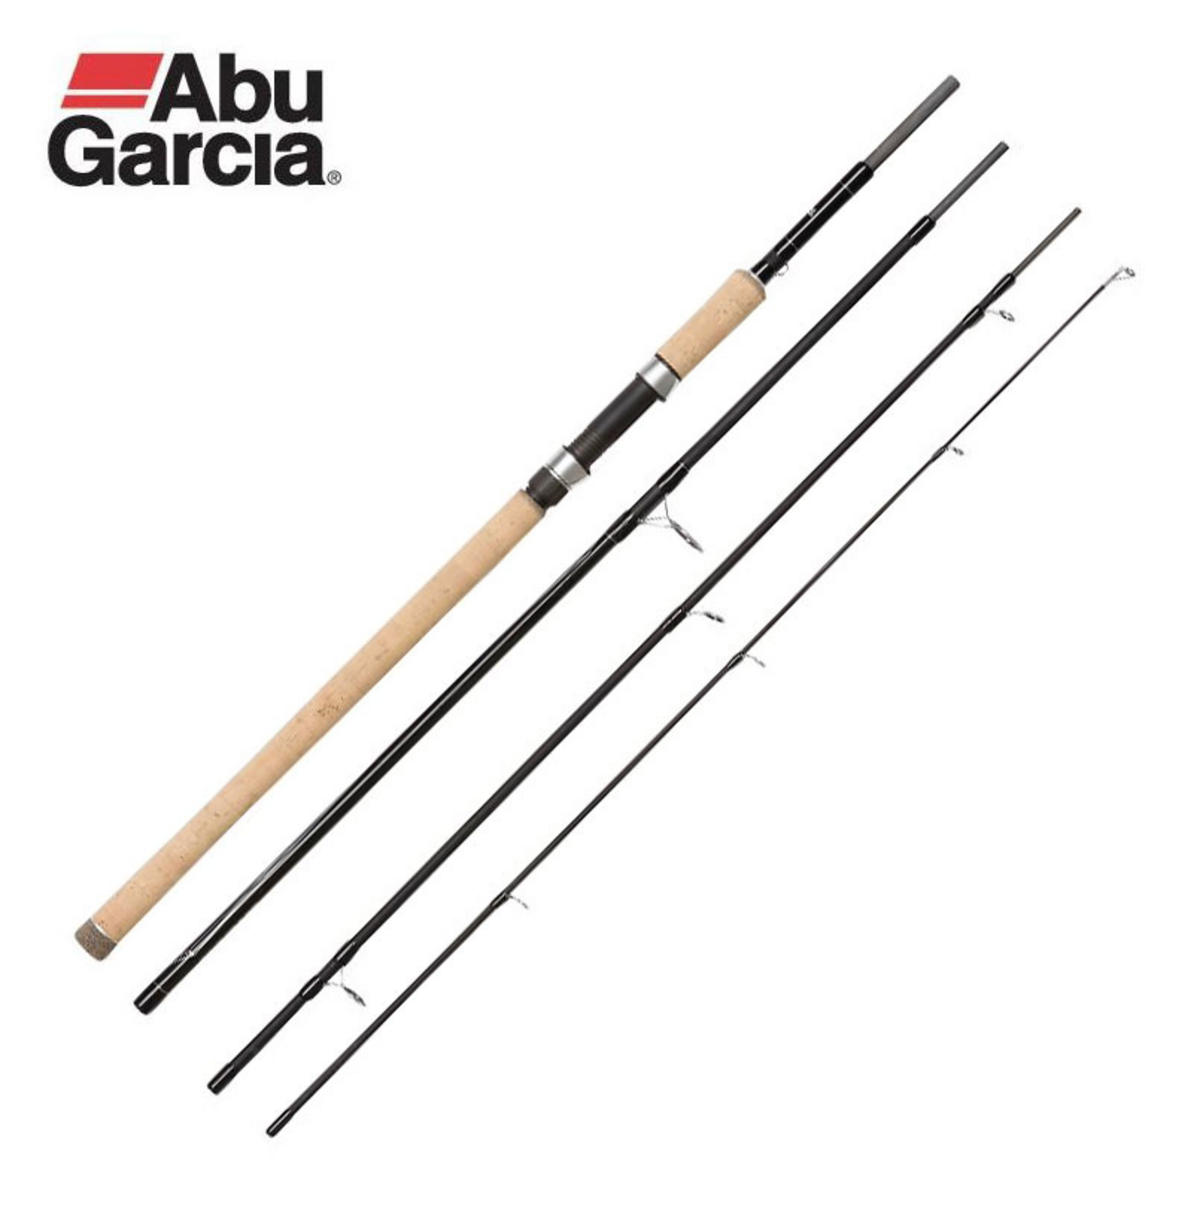 New Abu Garcia Venturi Travel Spinning Rod 10ft M 15-50g 4pc 1407163